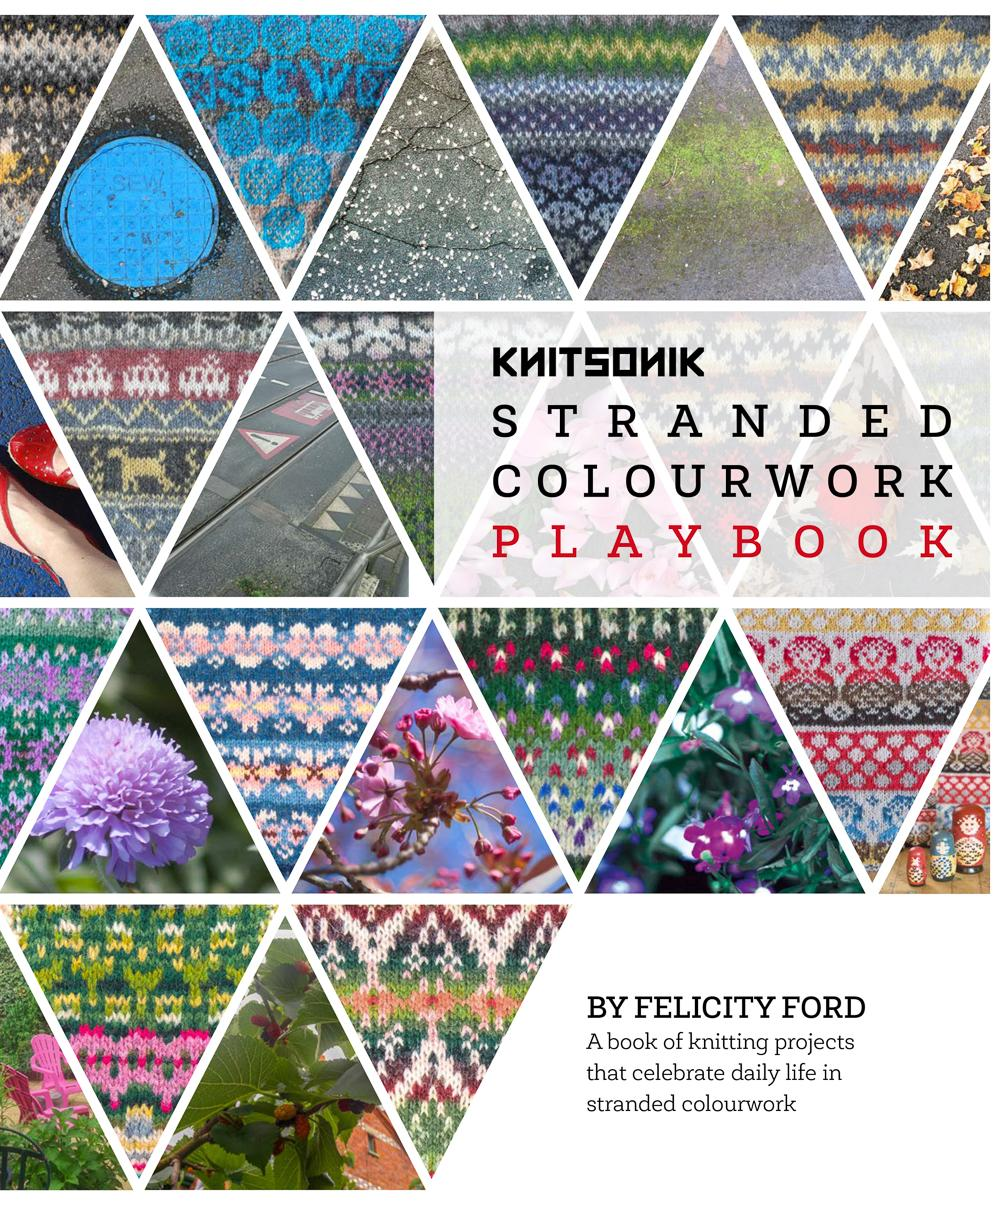 KNITSONIK Stranded Colourwork Playbook cover